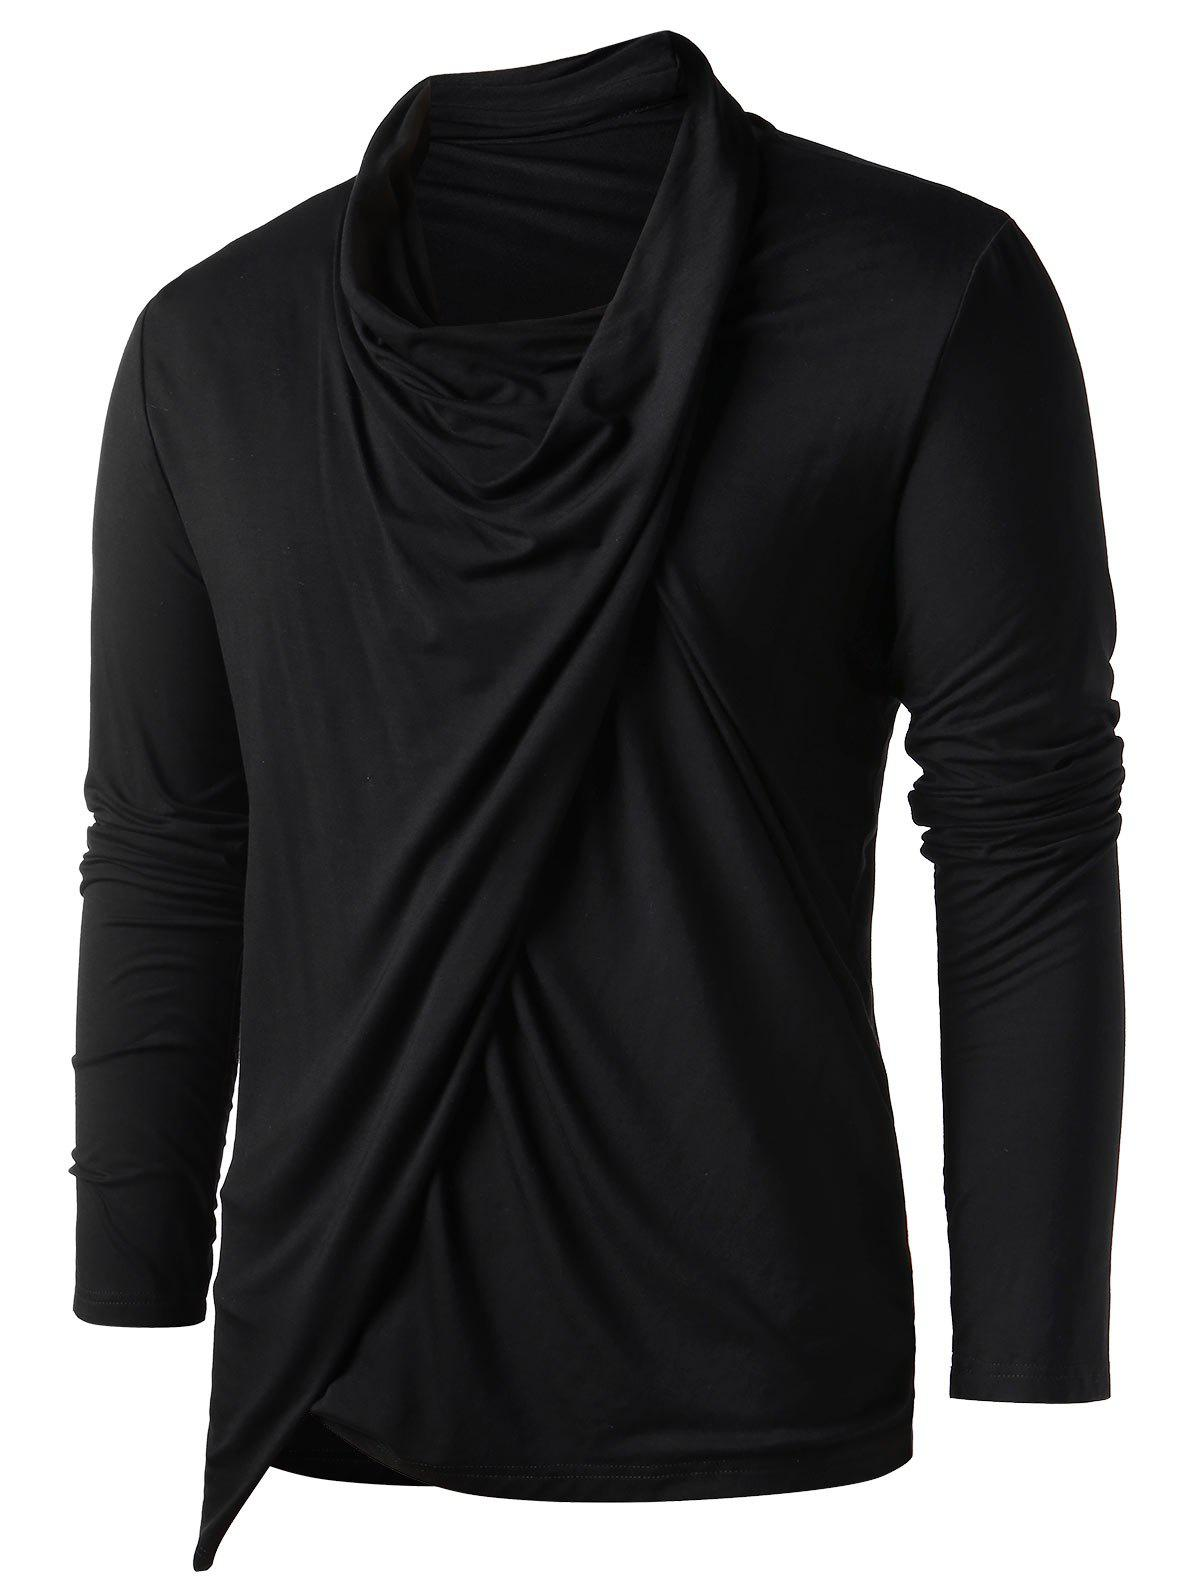 Online Asymmetric Heaps Collar Long Sleeve T-shirt